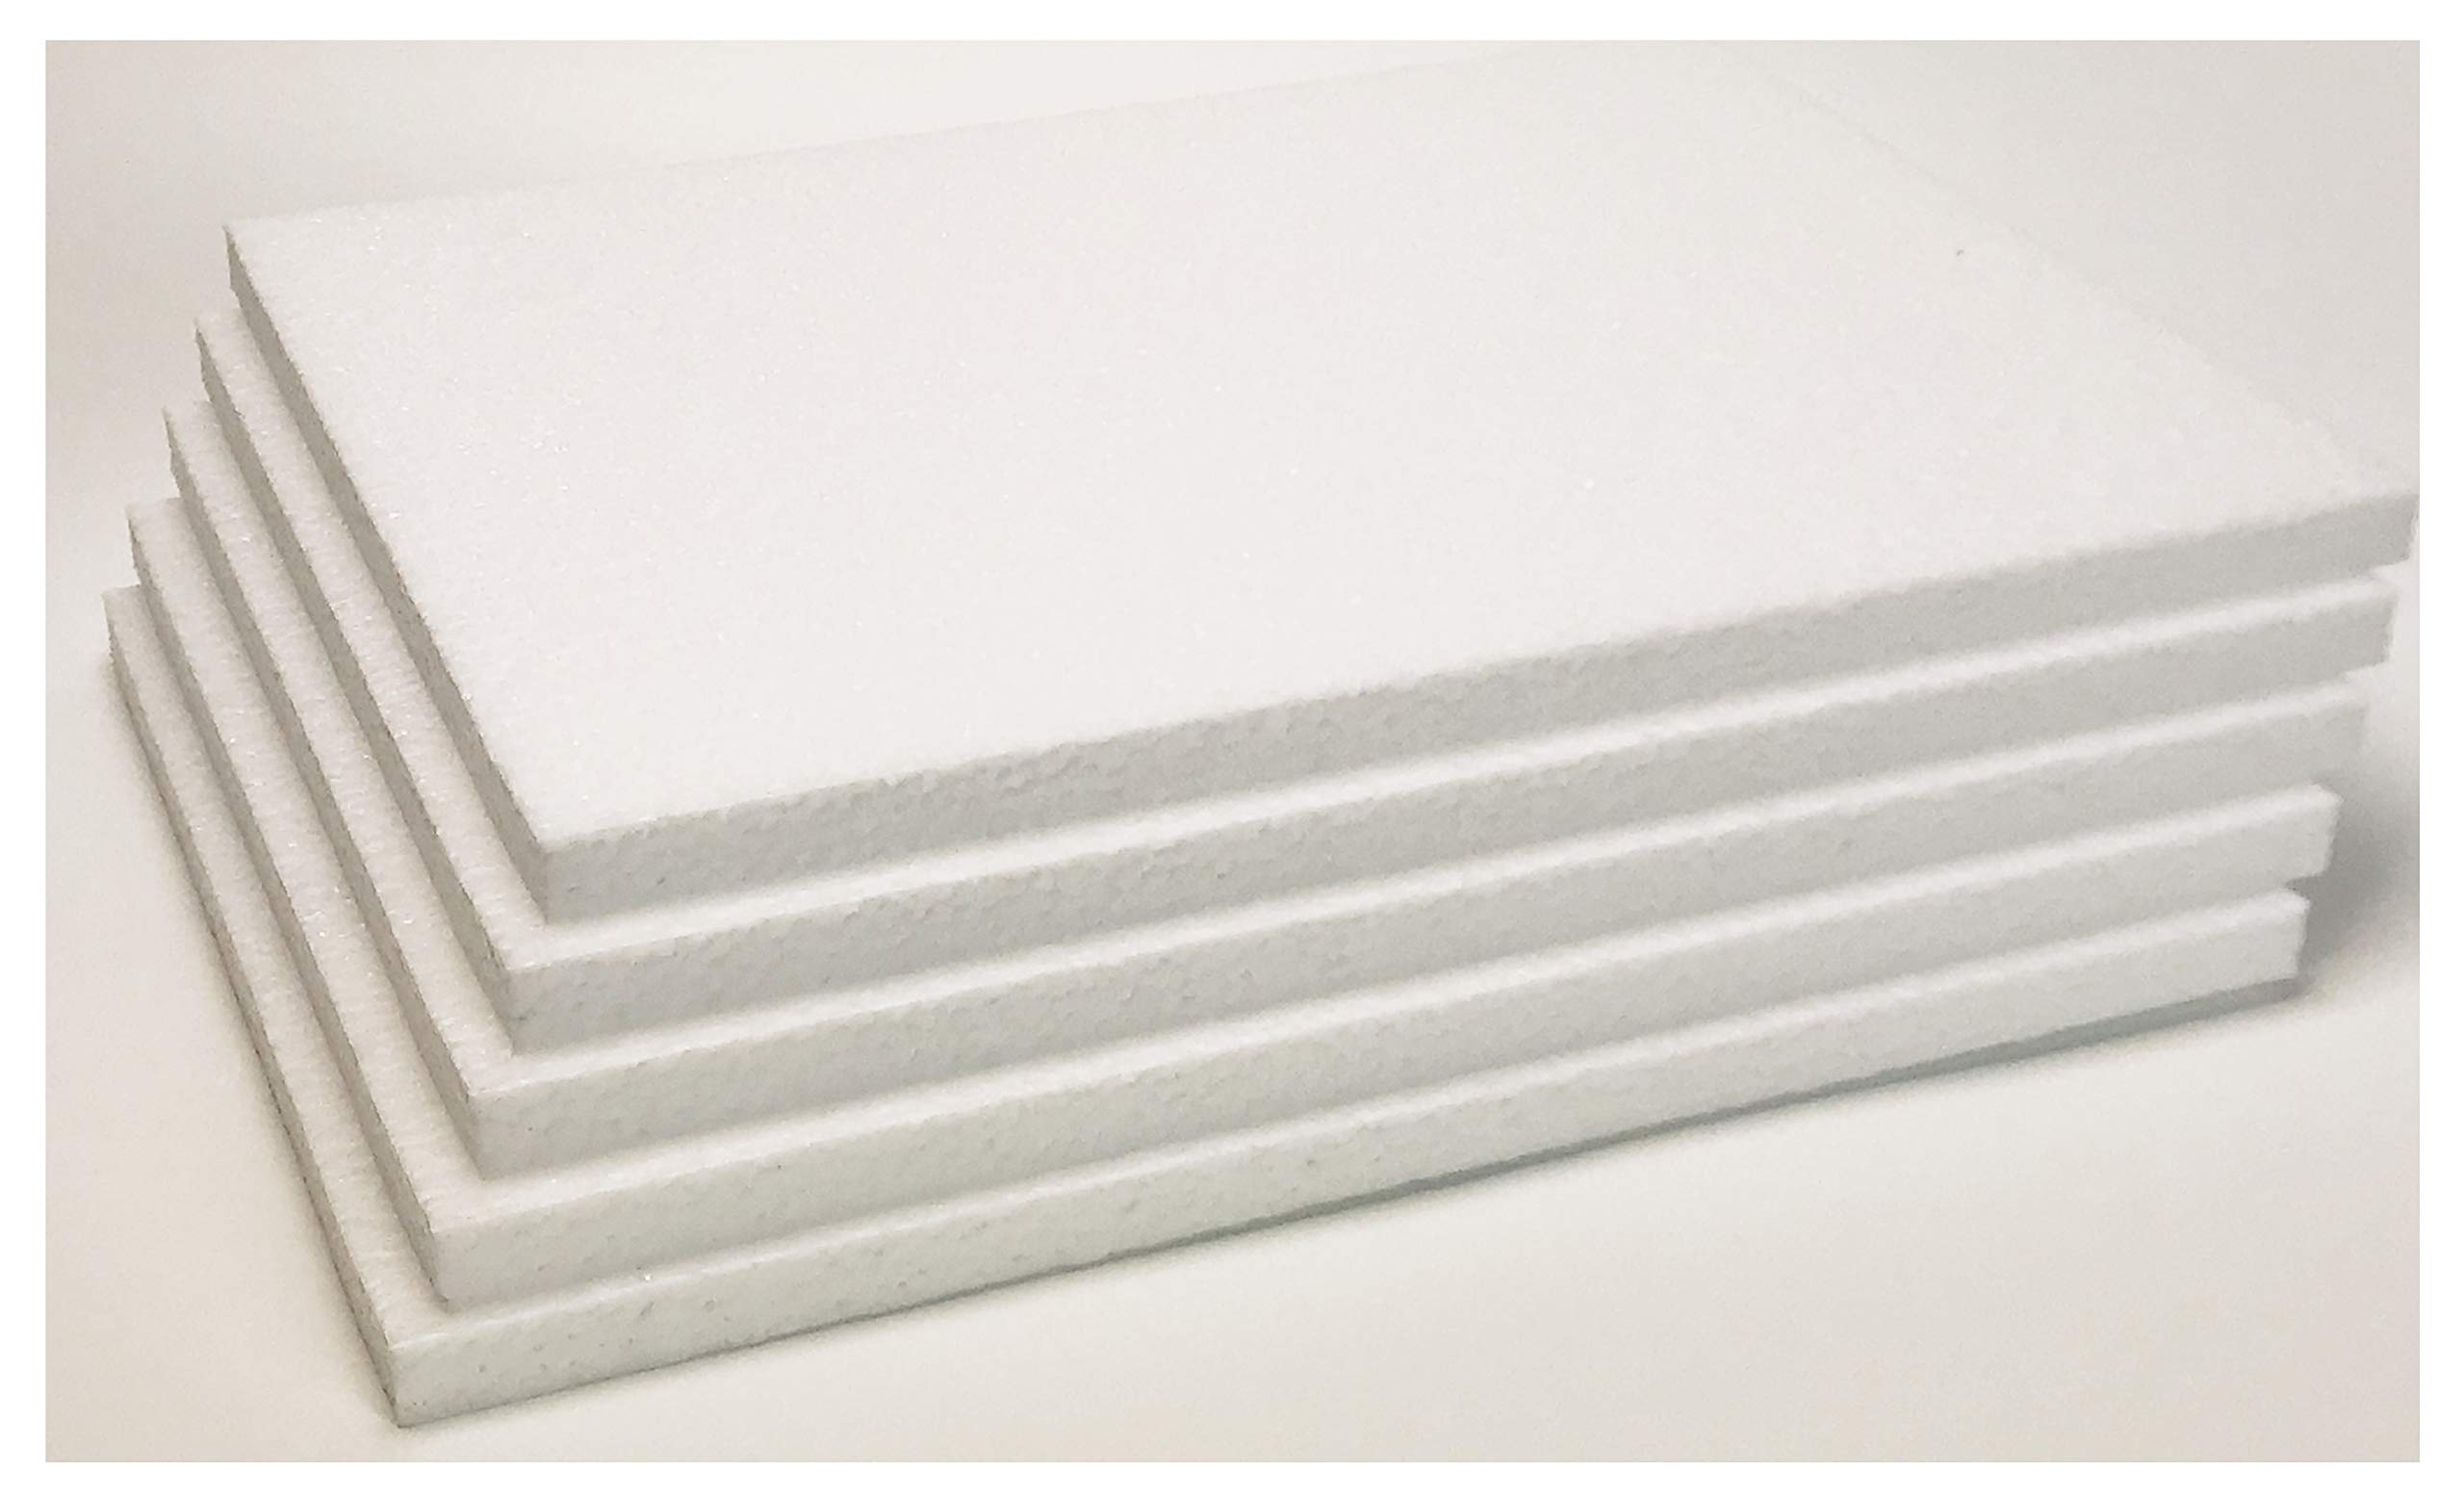 Styrofoam Sheets (8 1/2 X 11 X 1/4 inches) - White (Lot of 100) by Master451 (Image #3)